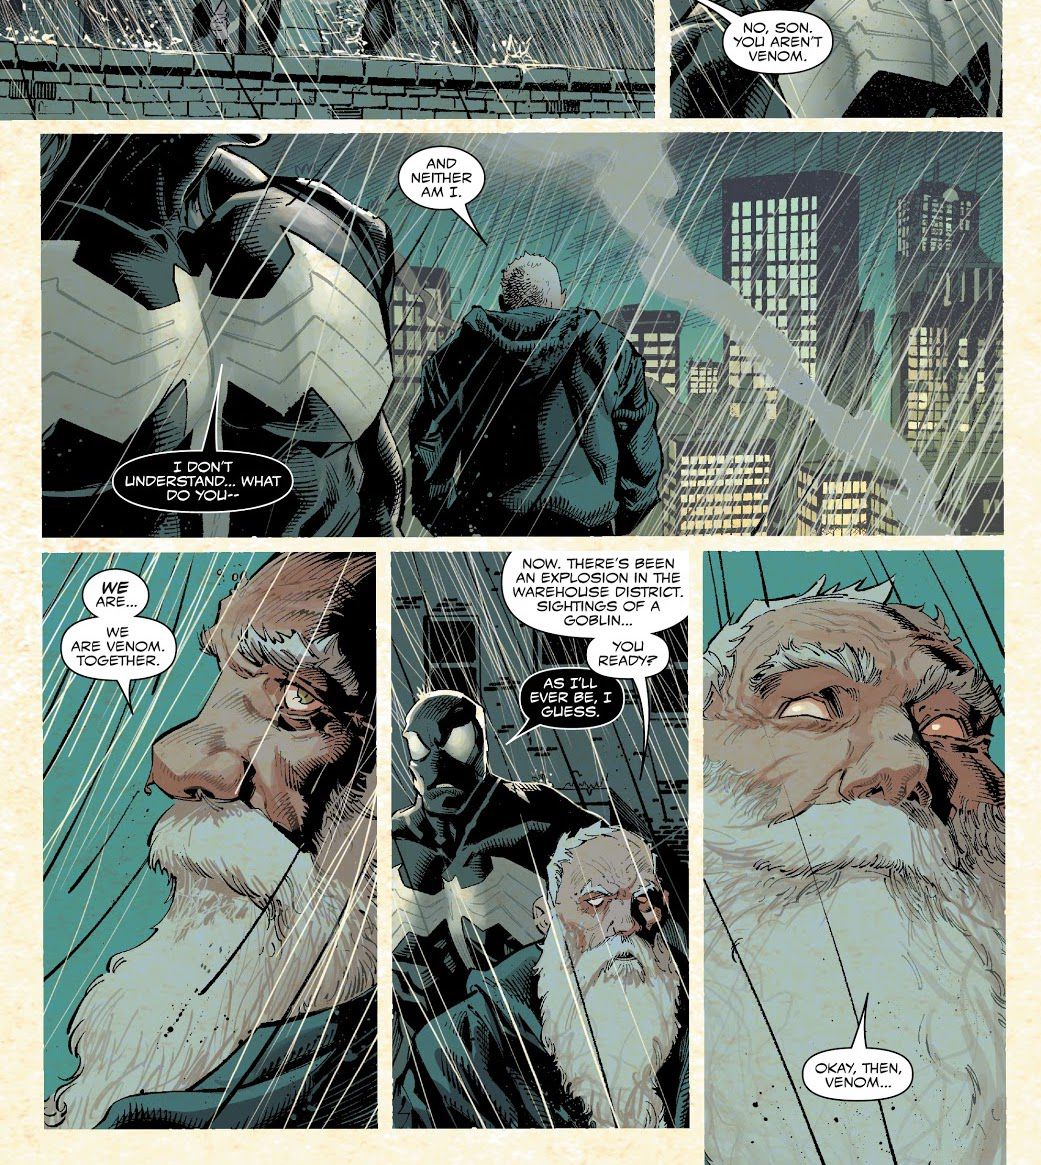 """""""We are Venom. Together,"""" an elderly-looking Eddie Brock tells his son, who is wearing the Venom symbiote. """"Now, there's been an explosion in the warehouse district,"""" he continues, his eyes turning white, """"Sightings of a goblin... you ready?"""" in Venom #200 (2021)."""